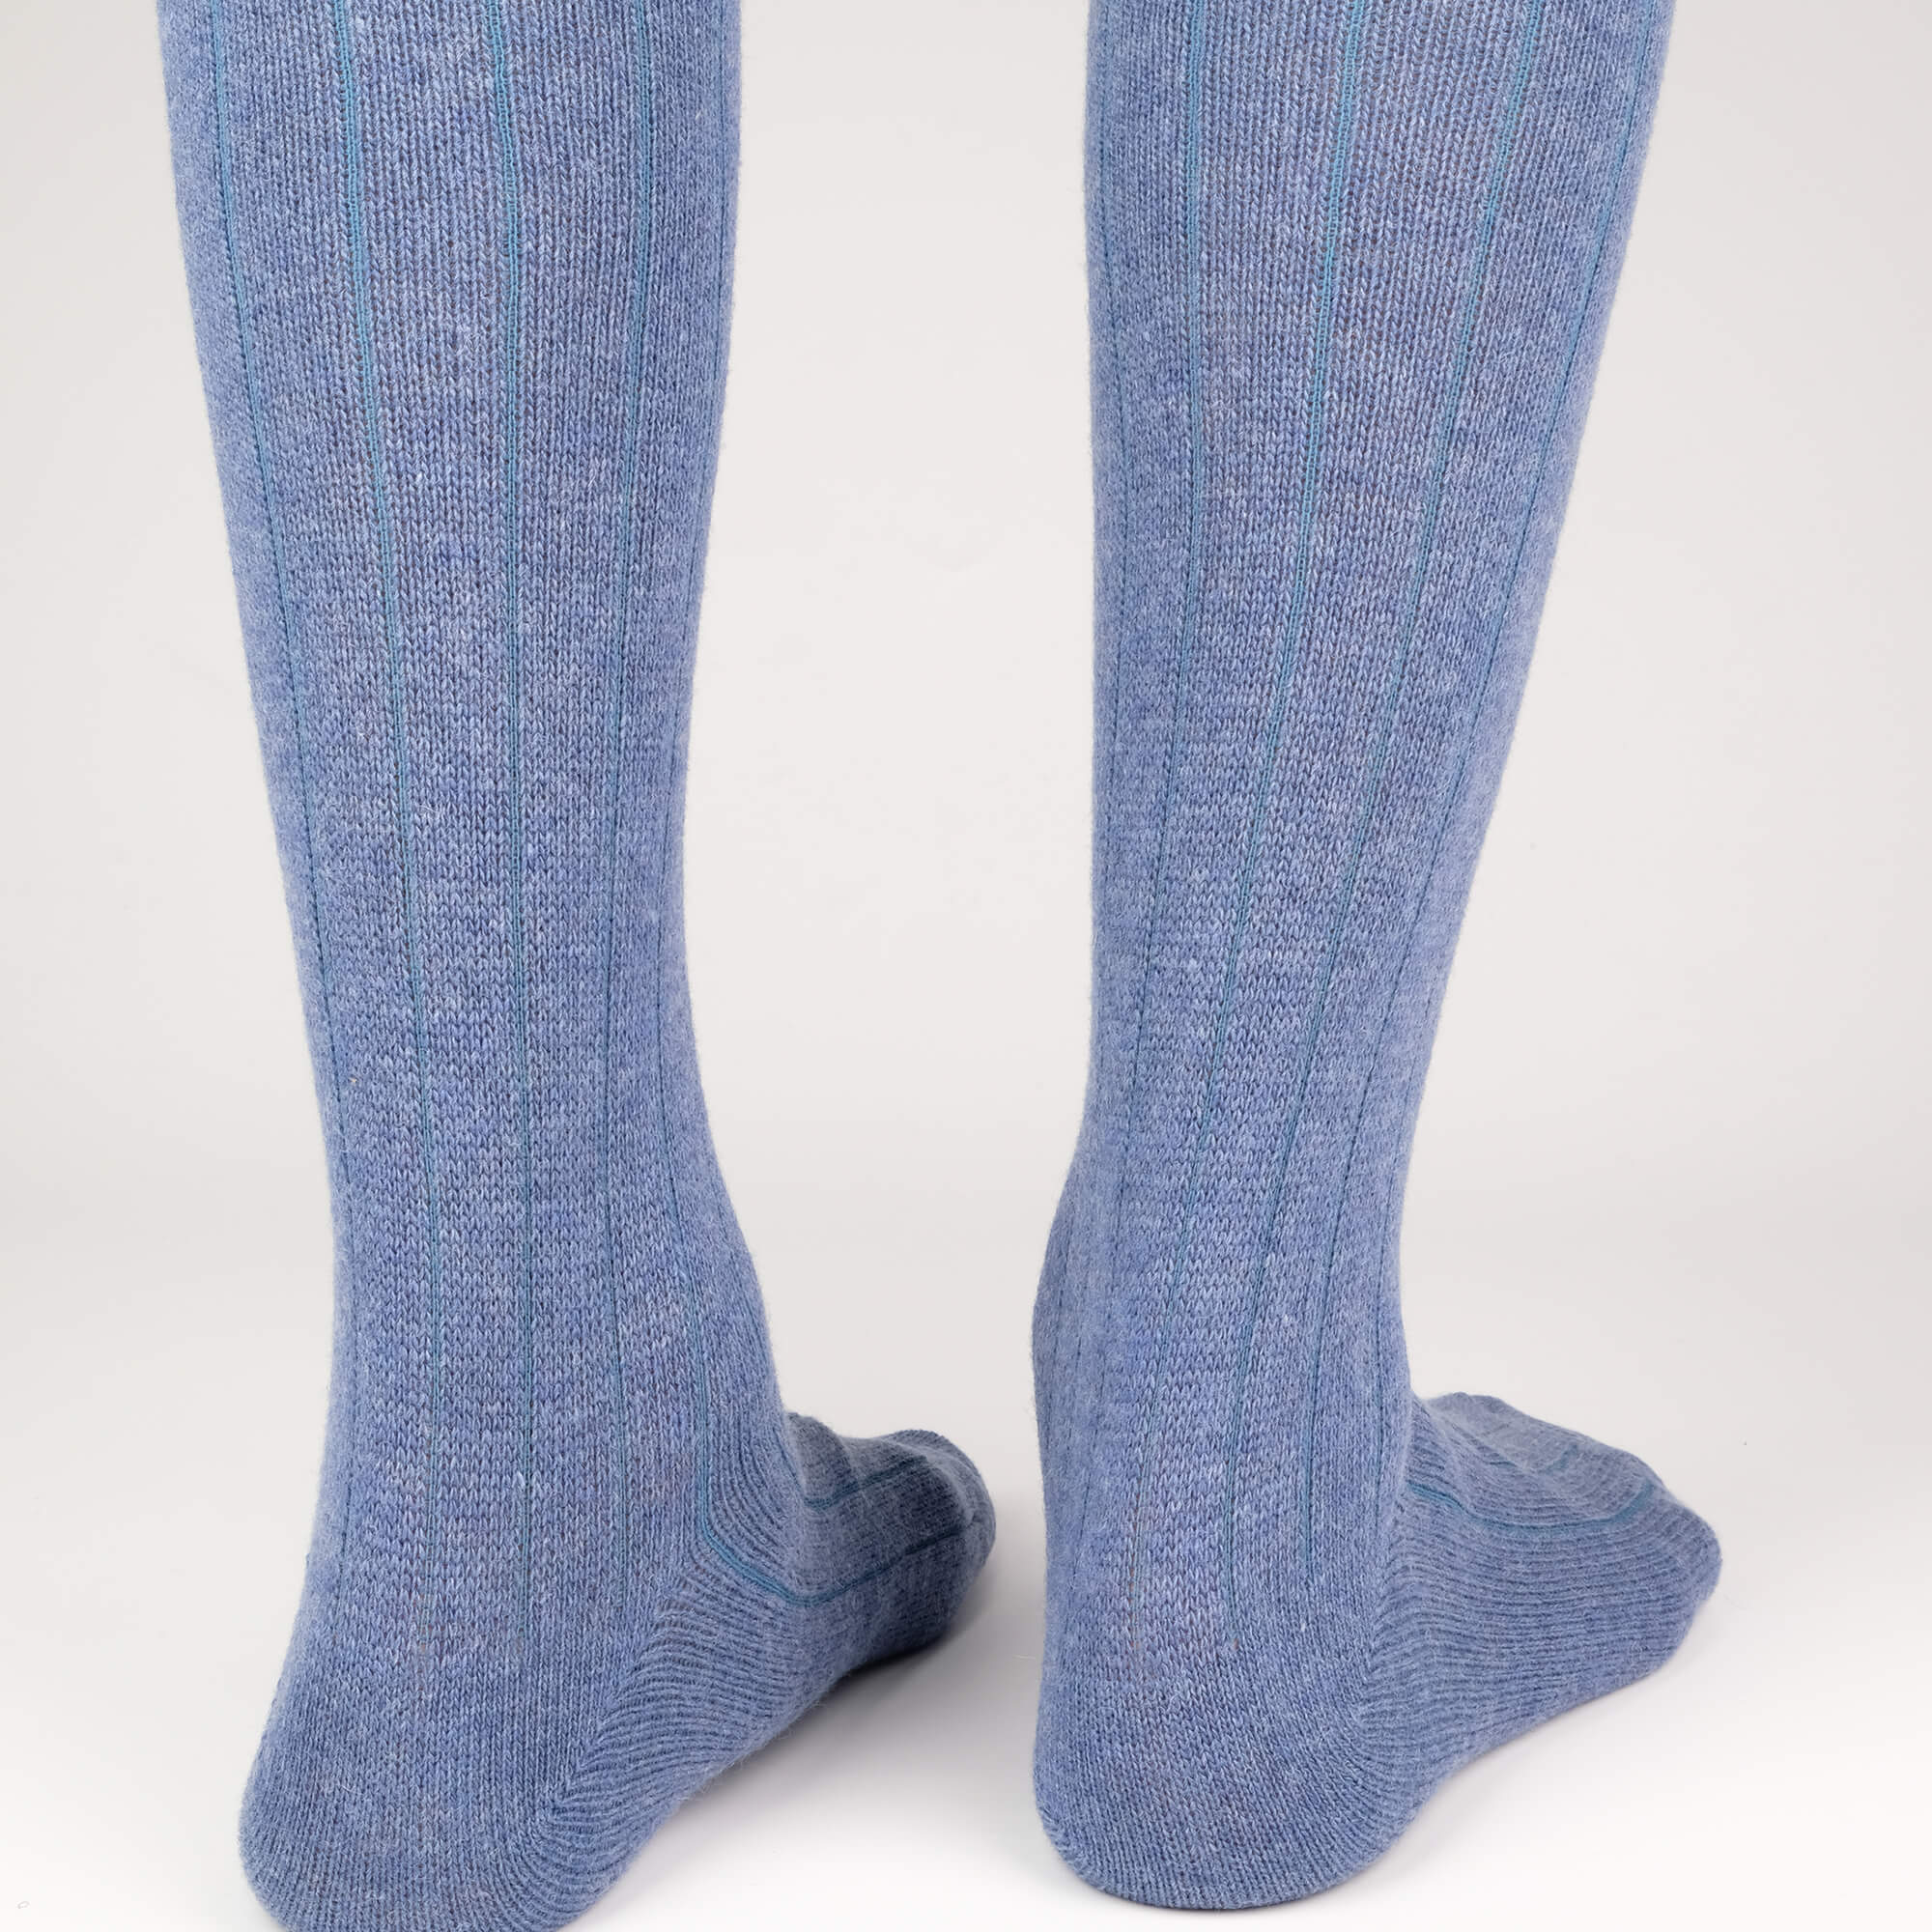 Mens Socks - Cashmere Knee High Ribbed Men's Socks - Blue⎪Etiquette Clothiers